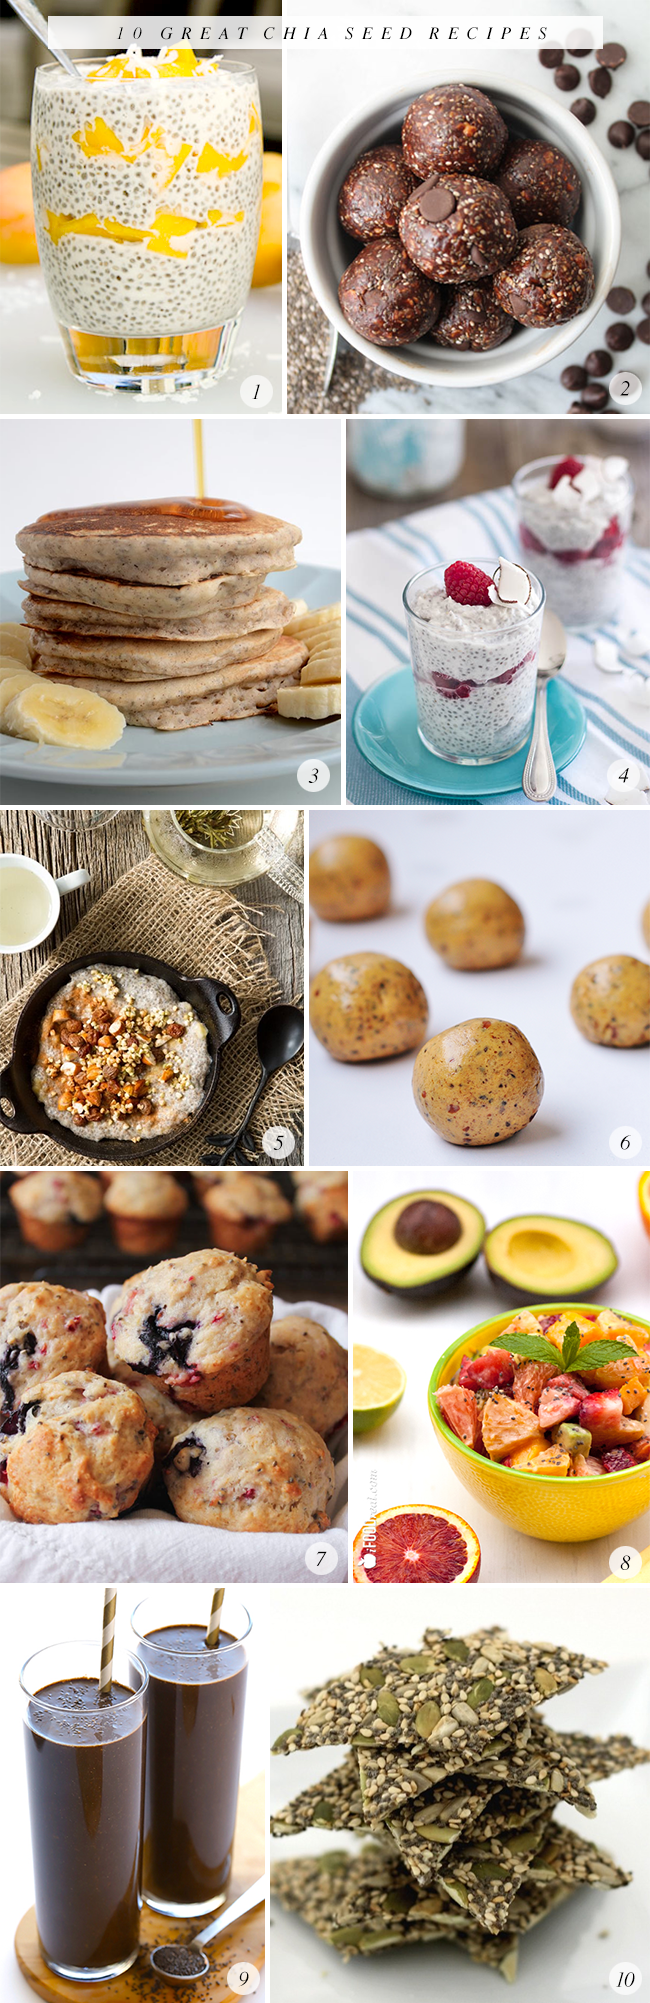 10 Great Chia Seed Recipes // Bubby and Bean